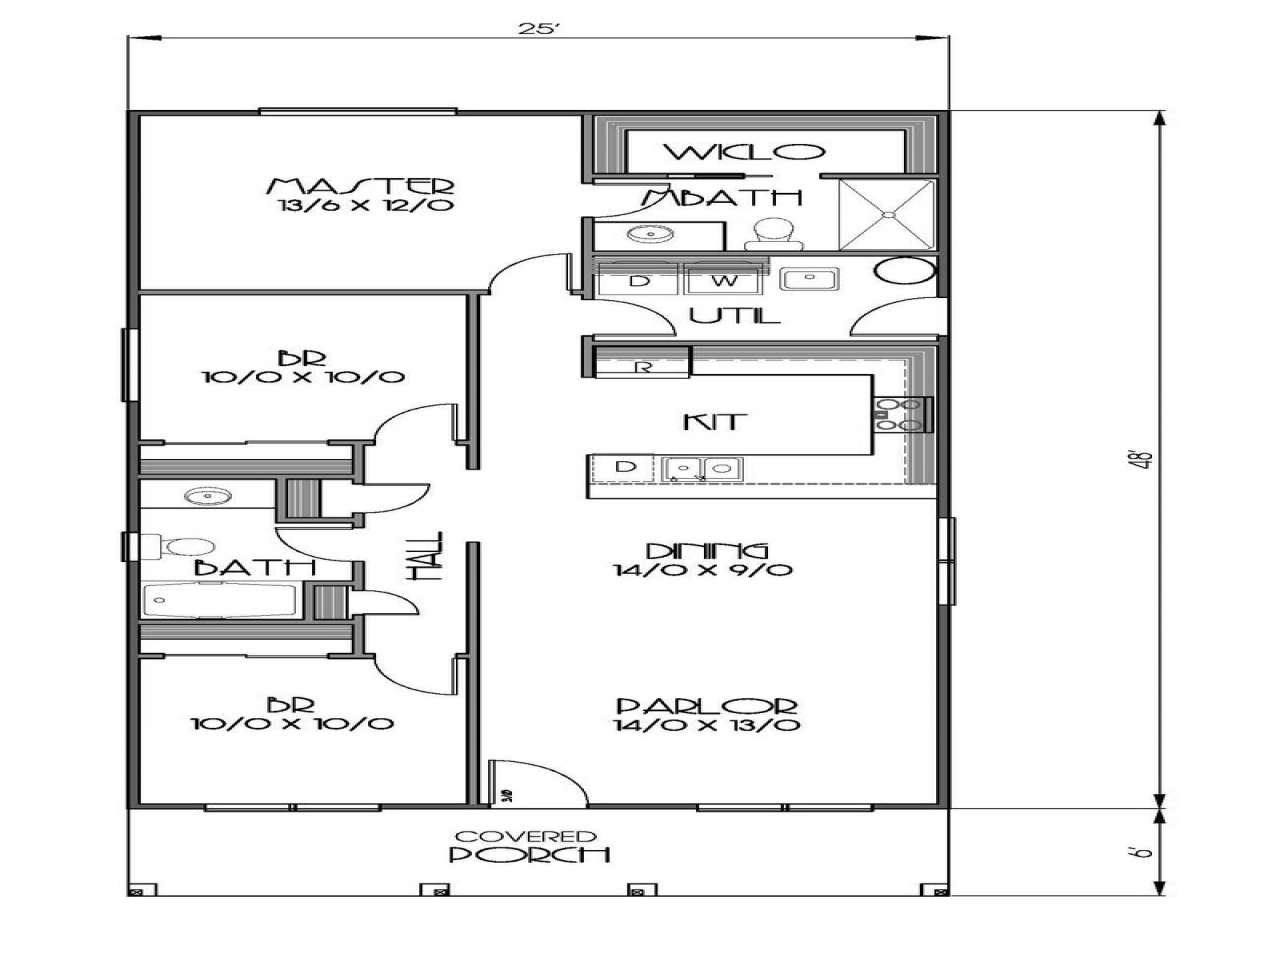 1200 sq foot house floor plan 1200 sq ft house plans 2 for Floor plans 1200 sq ft ranch